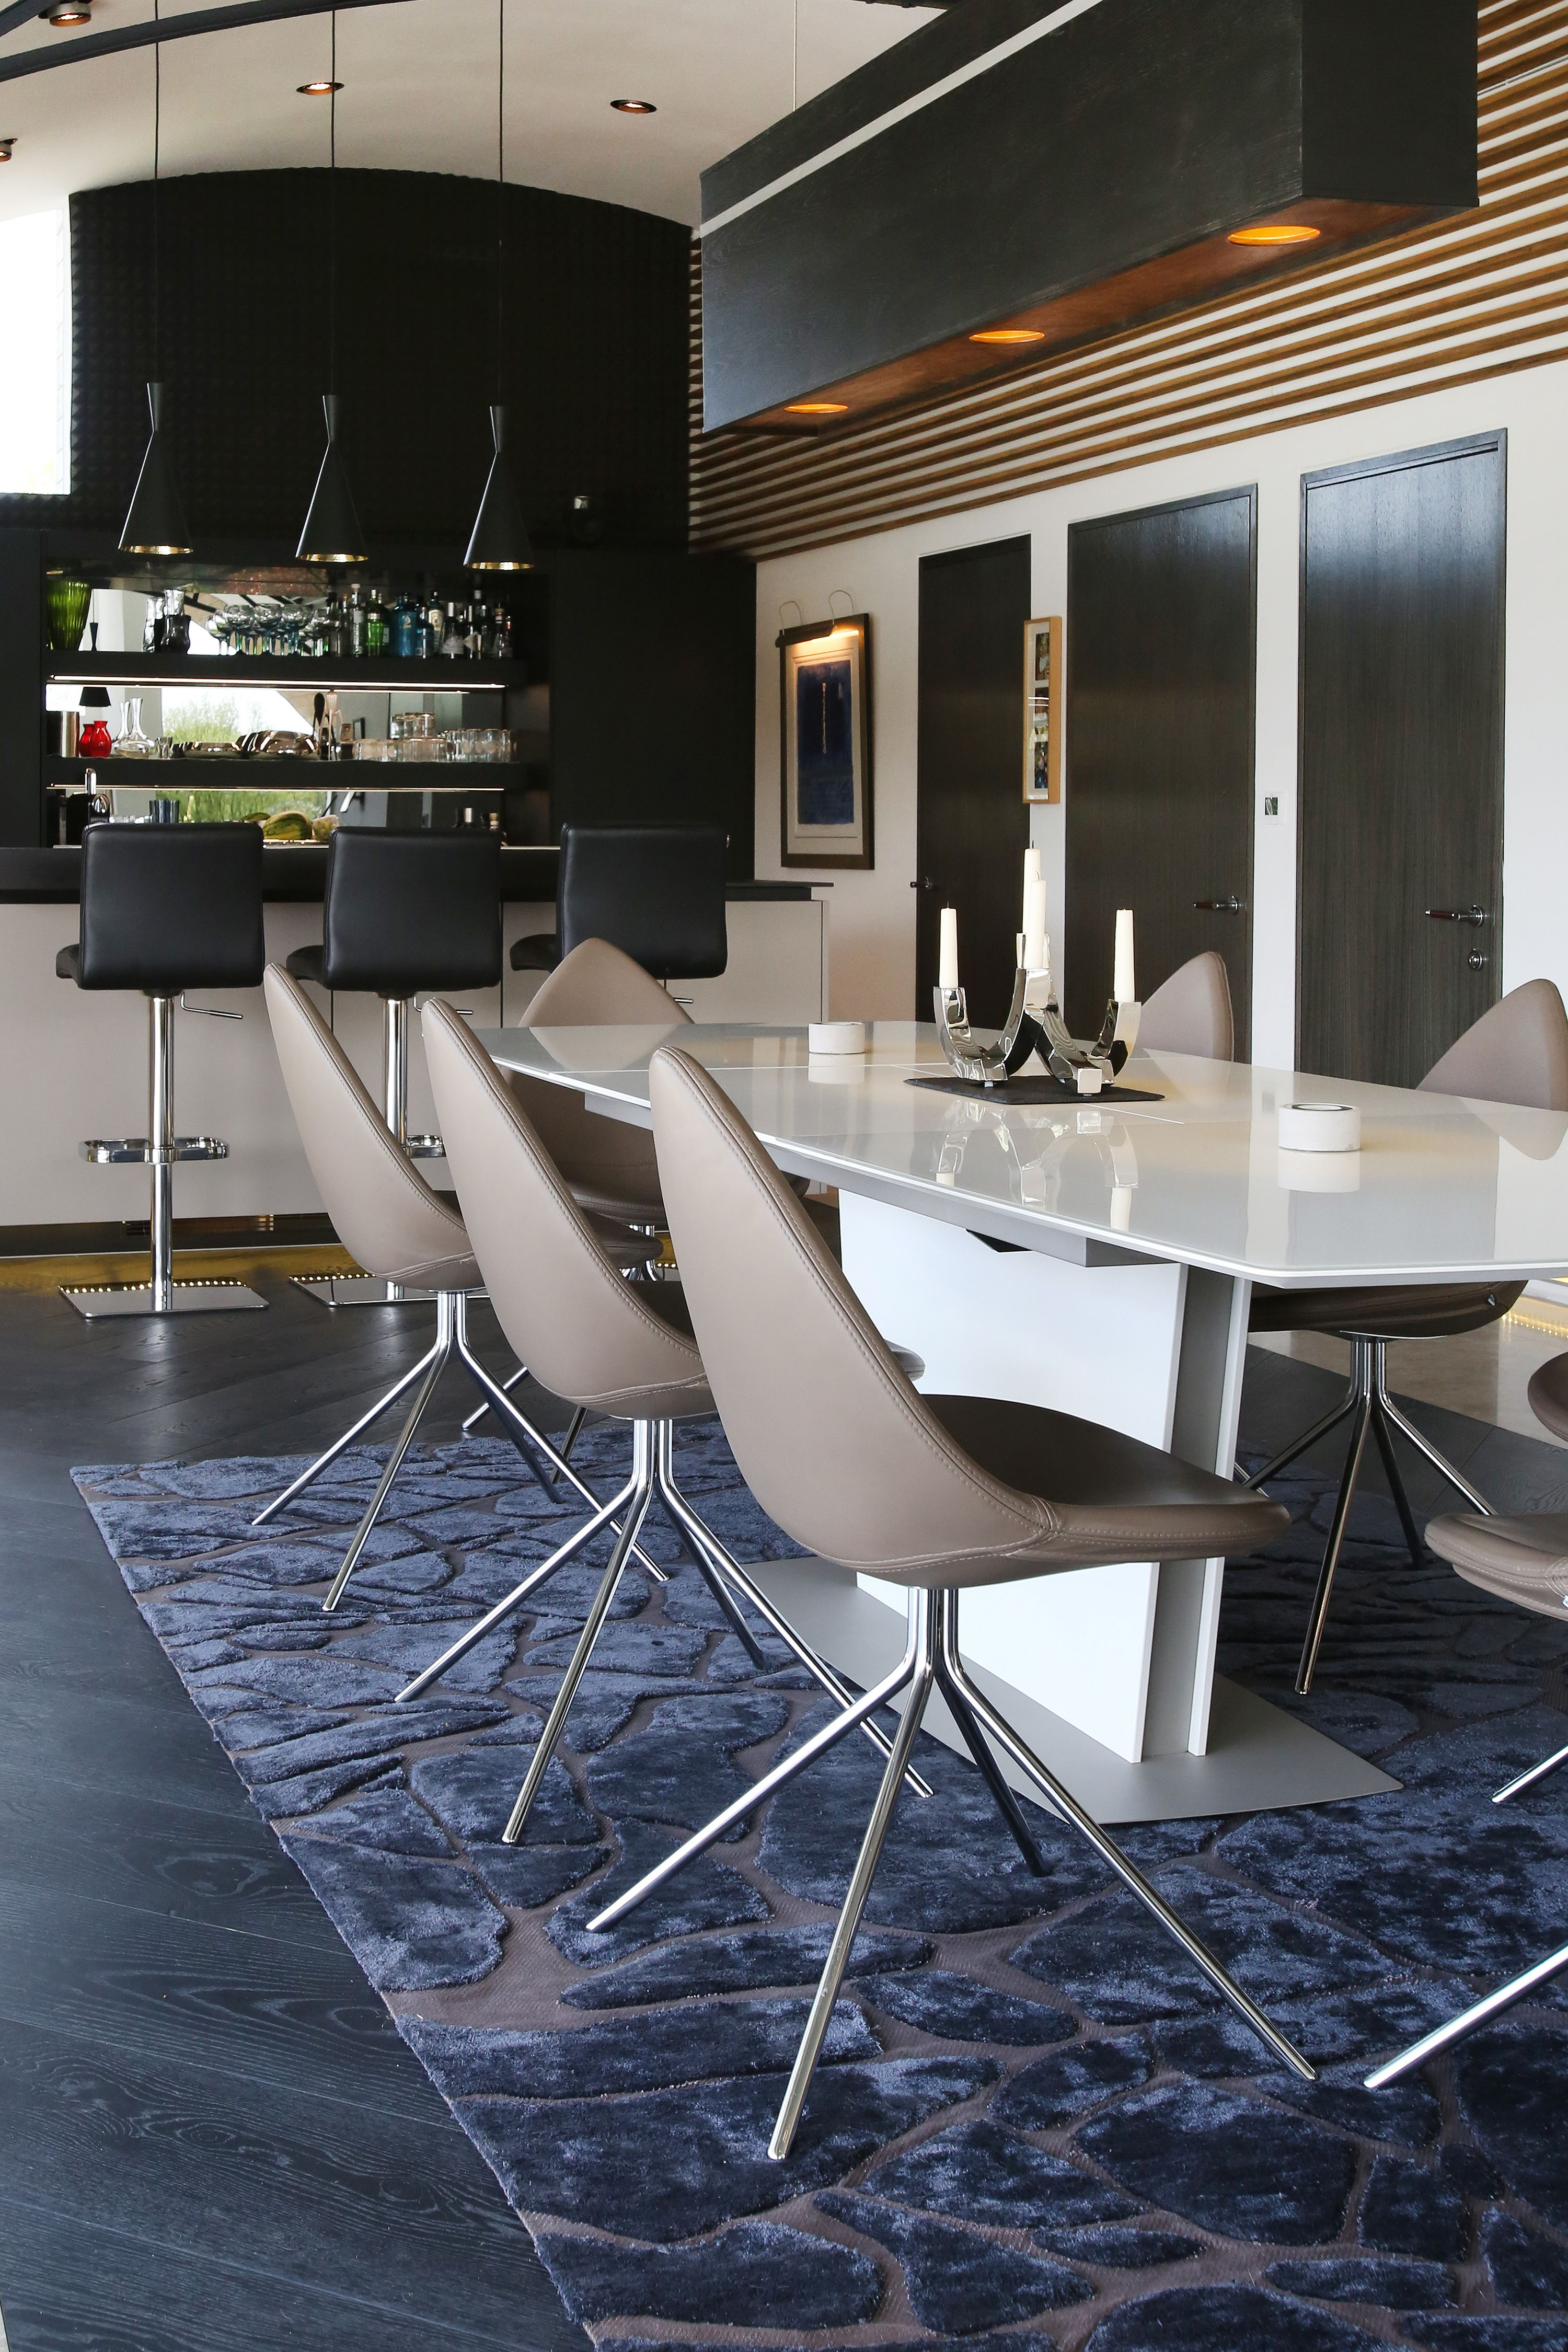 Monte sua my chair - Rug Dining Chair And Dining Table Come Together To Make The Living Room Compliment The